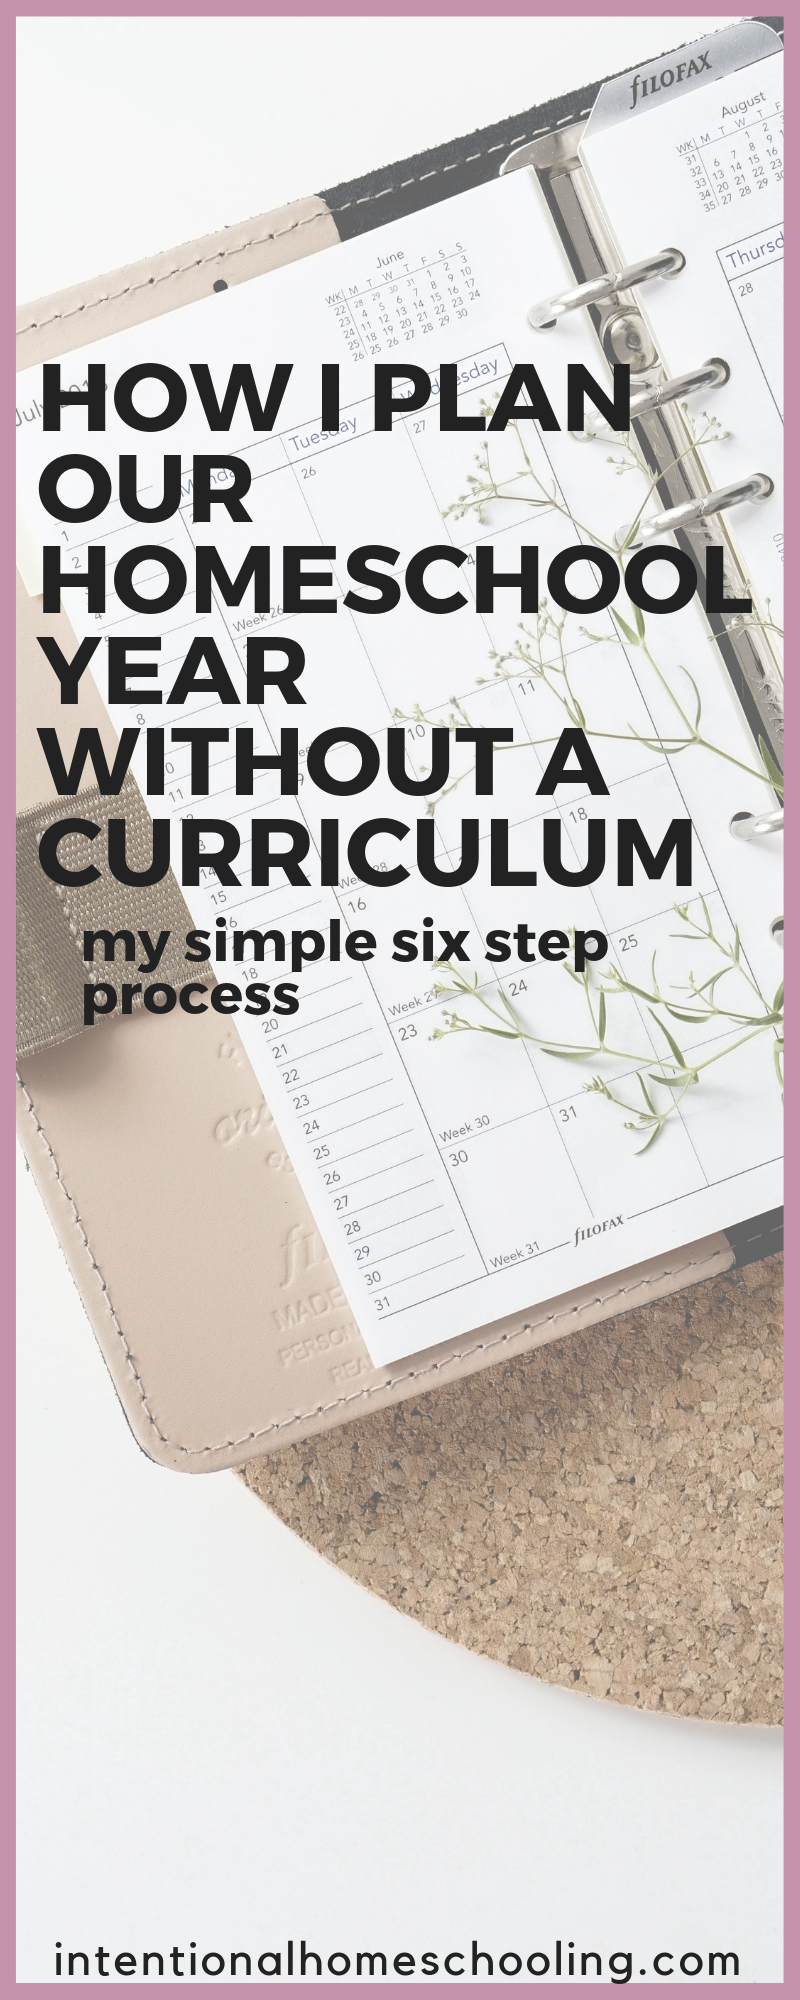 How I Plan Our Homeschool Year Without a Curriculum